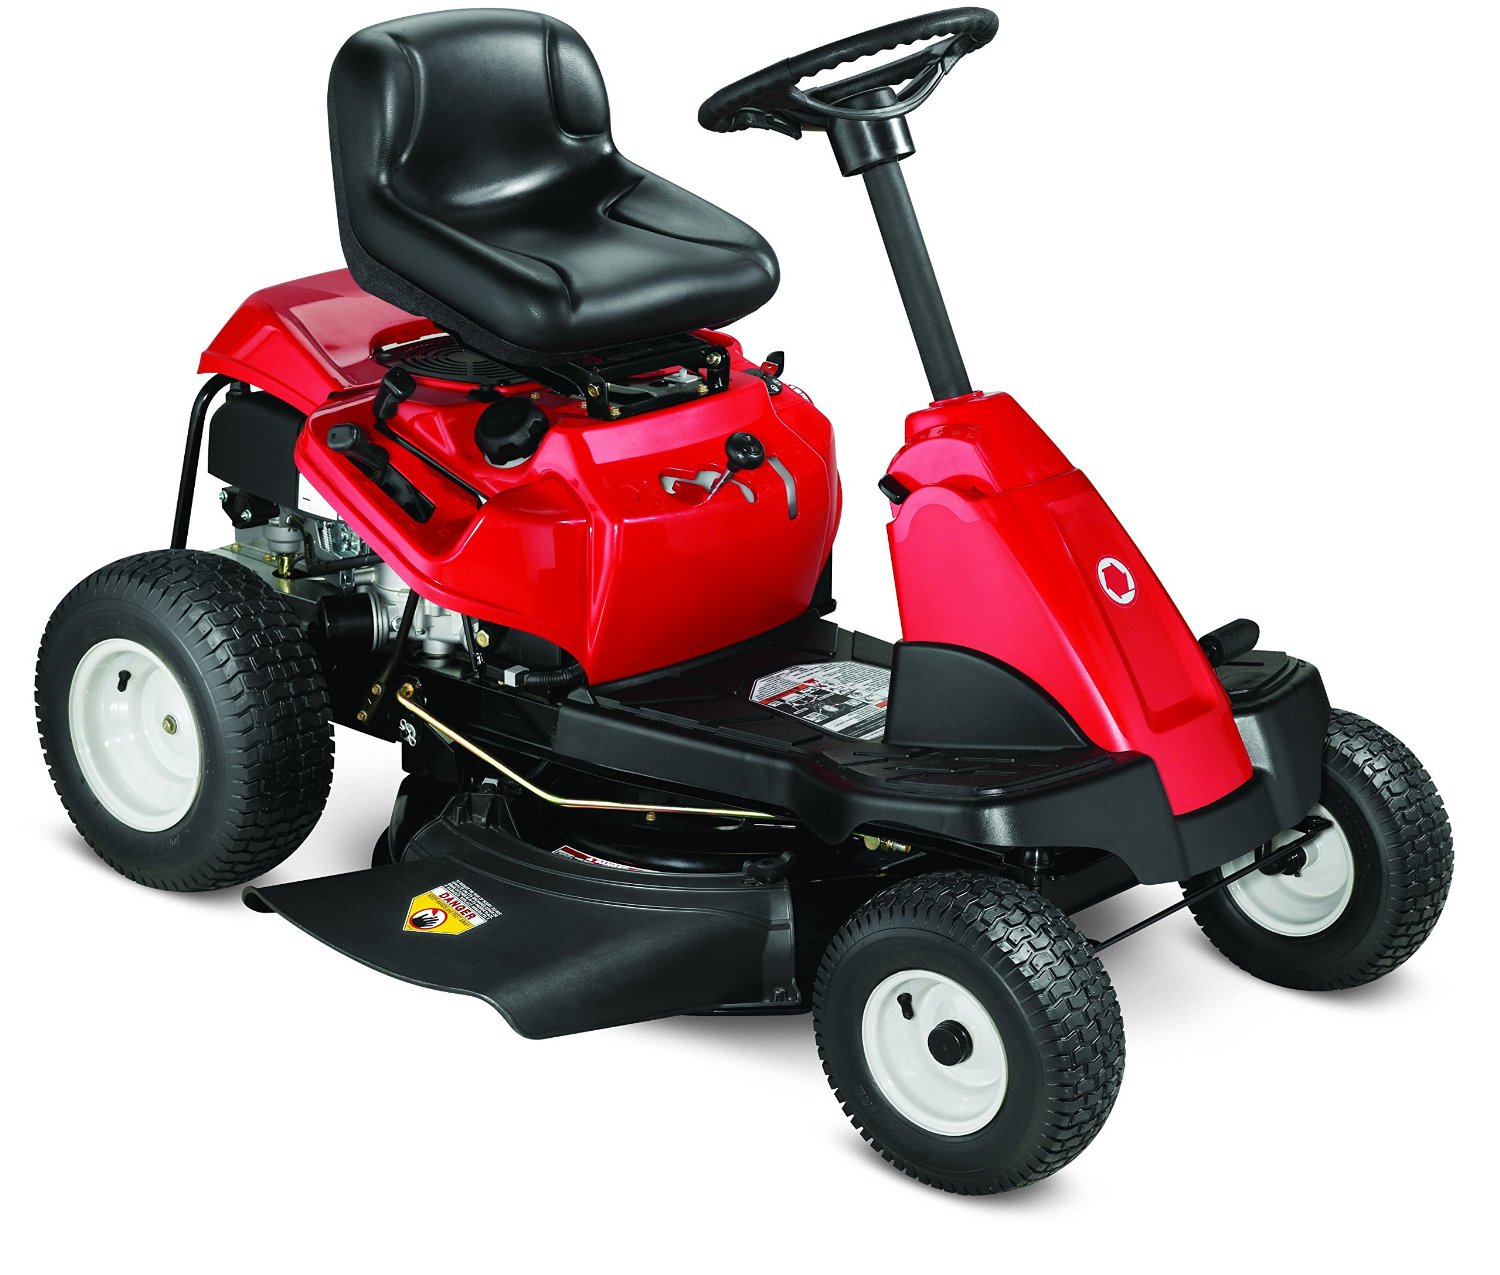 The Troy Bilt Tb30r Rear Engine Riding Mower Review